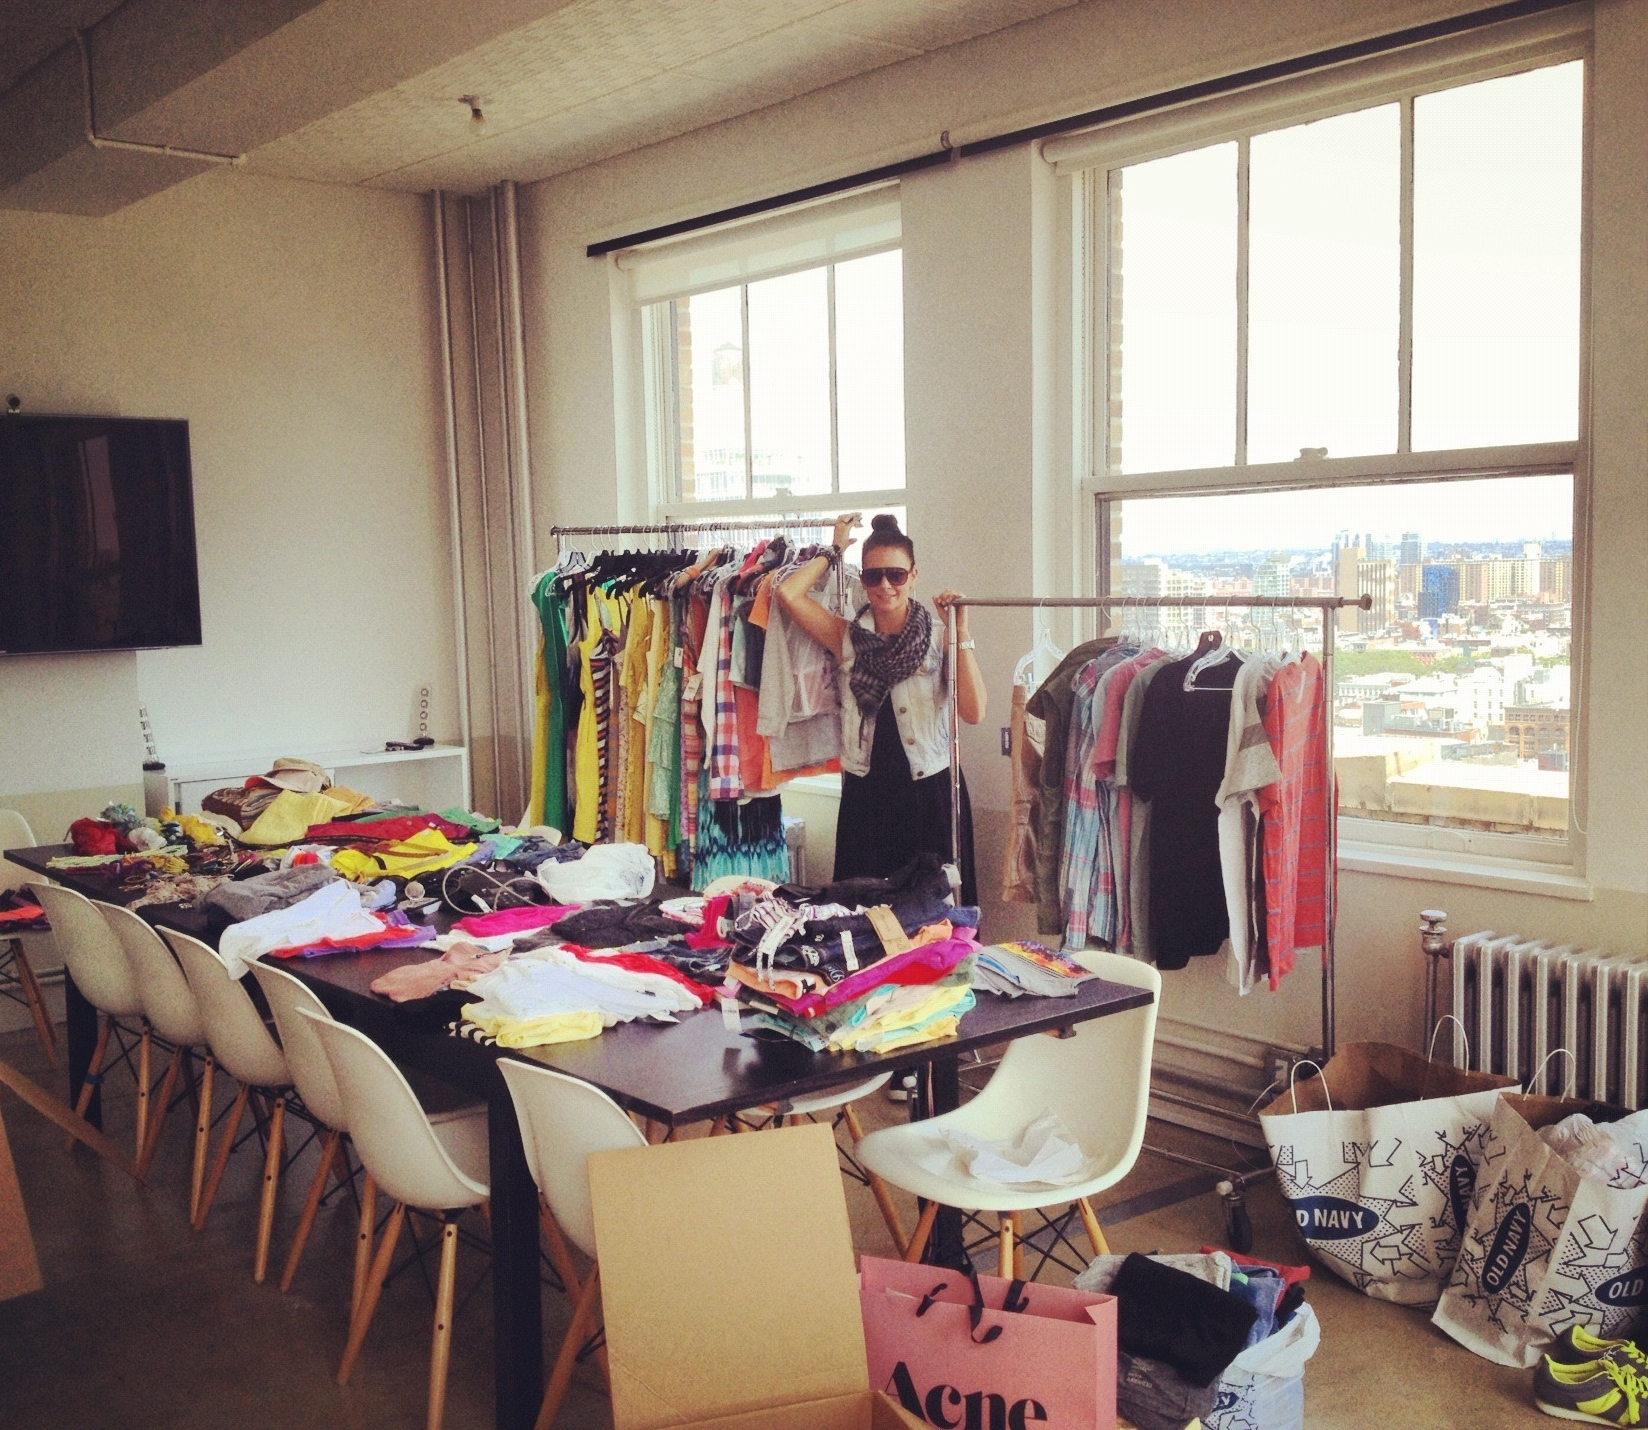 MFH.Styles makes an impact on peoples lives through a streamline approach of wardrobe editing, organization & styling. -